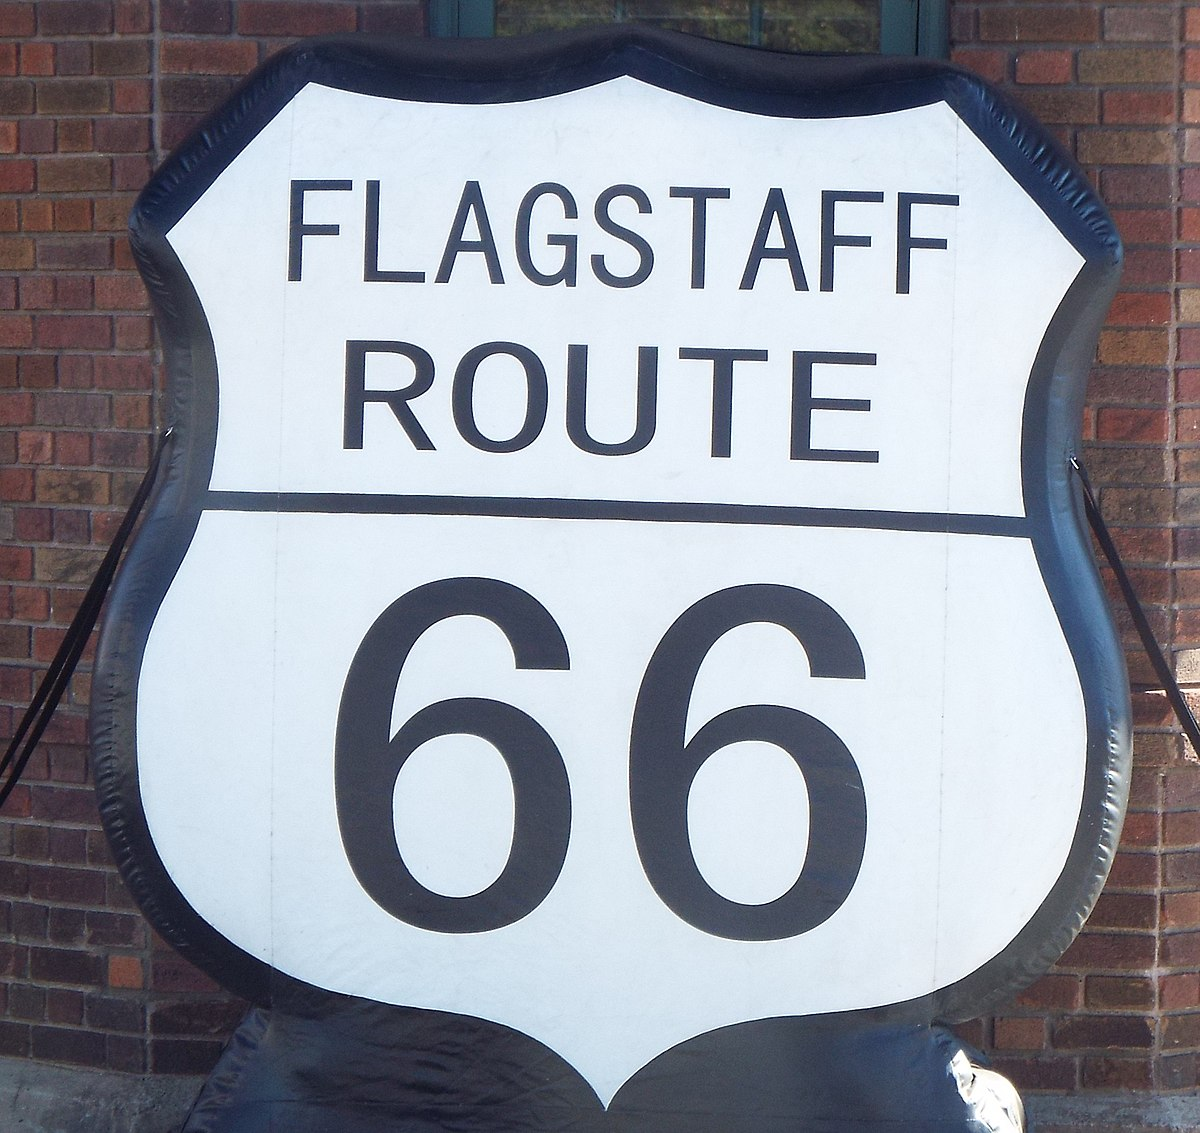 List of historic properties in Flagstaff